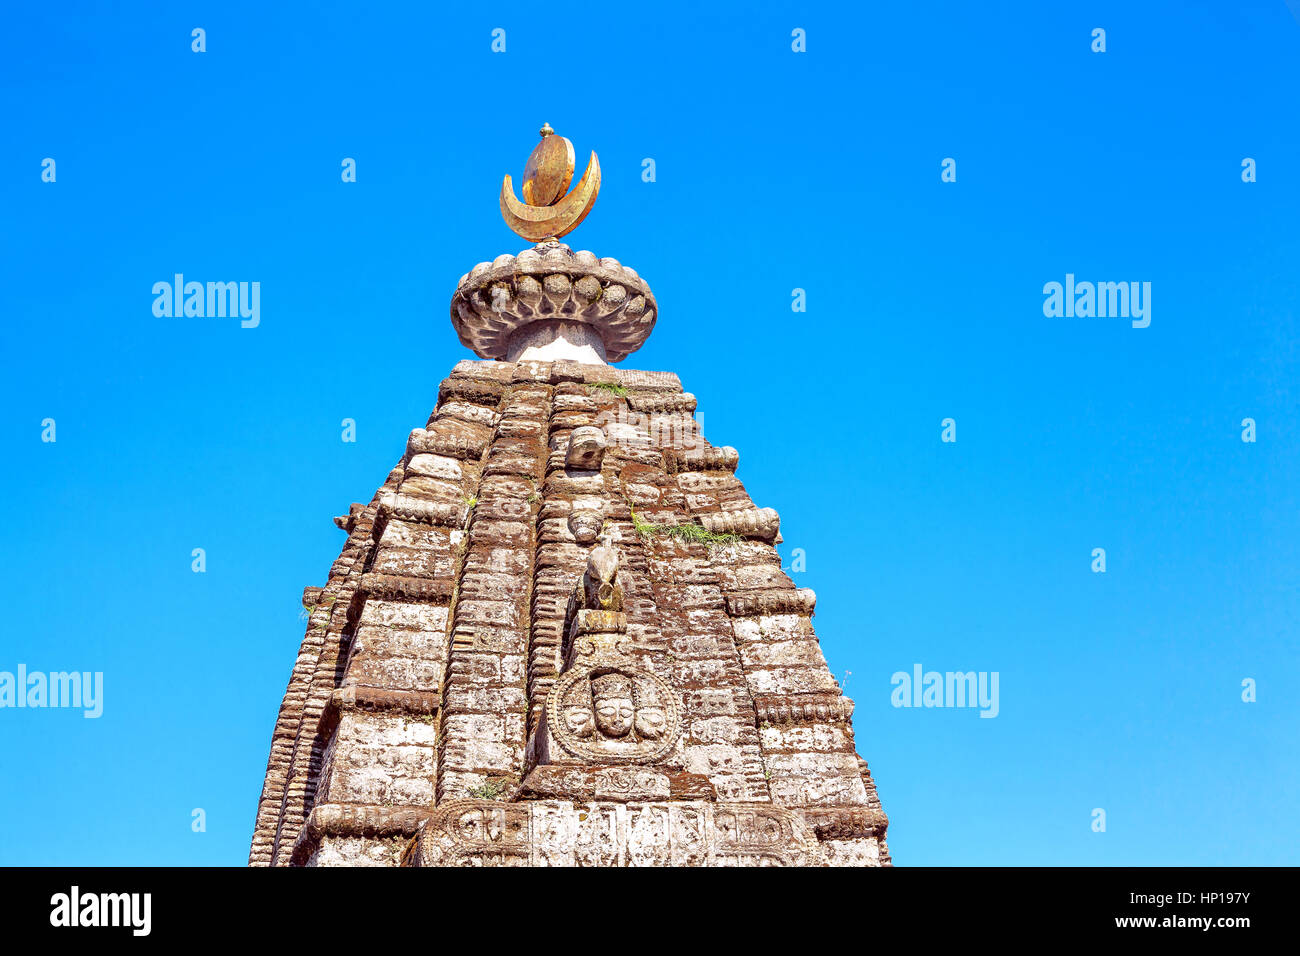 Dome of a traditional Hindu temple on a background of blue sky Stock